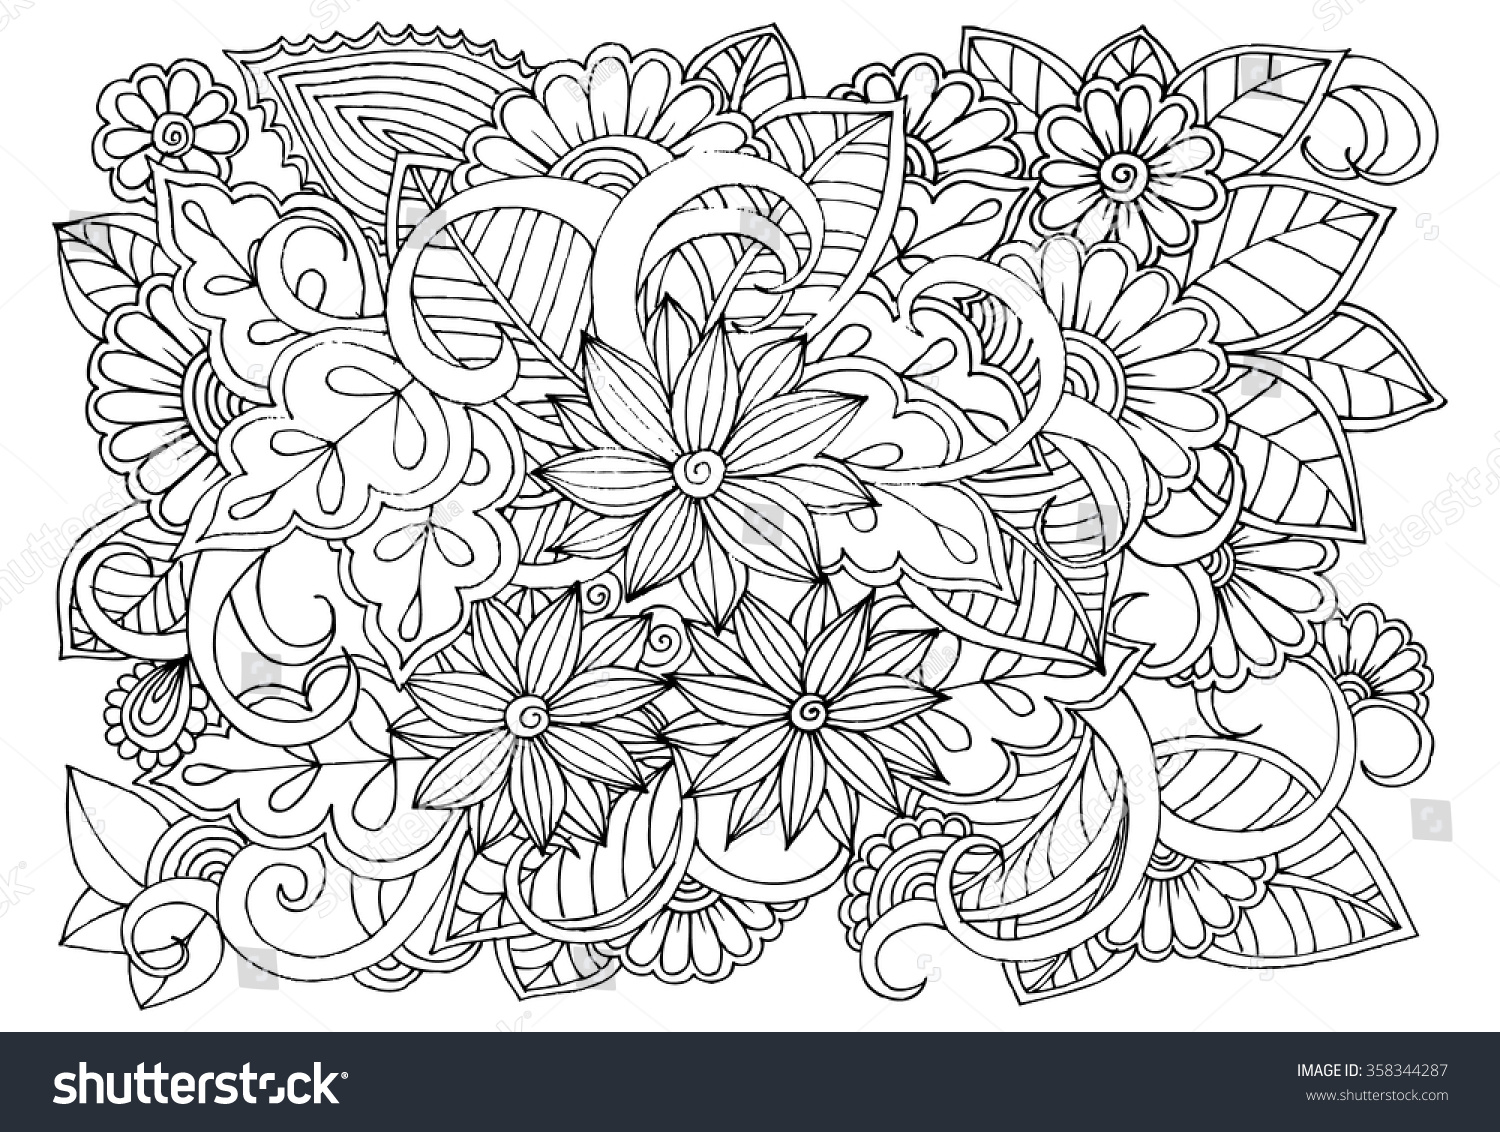 stock vector doodle floral pattern in black and white page for coloring book very interesting and relaxing job 358344287 including wildflower coloring pages coloring free download printable on wildflower coloring pages likewise wildflower coloring pages coloring free download printable on wildflower coloring pages together with wild flowers coloring pages google search piante pinterest on wildflower coloring pages likewise wildflower coloring pages coloring free download printable on wildflower coloring pages